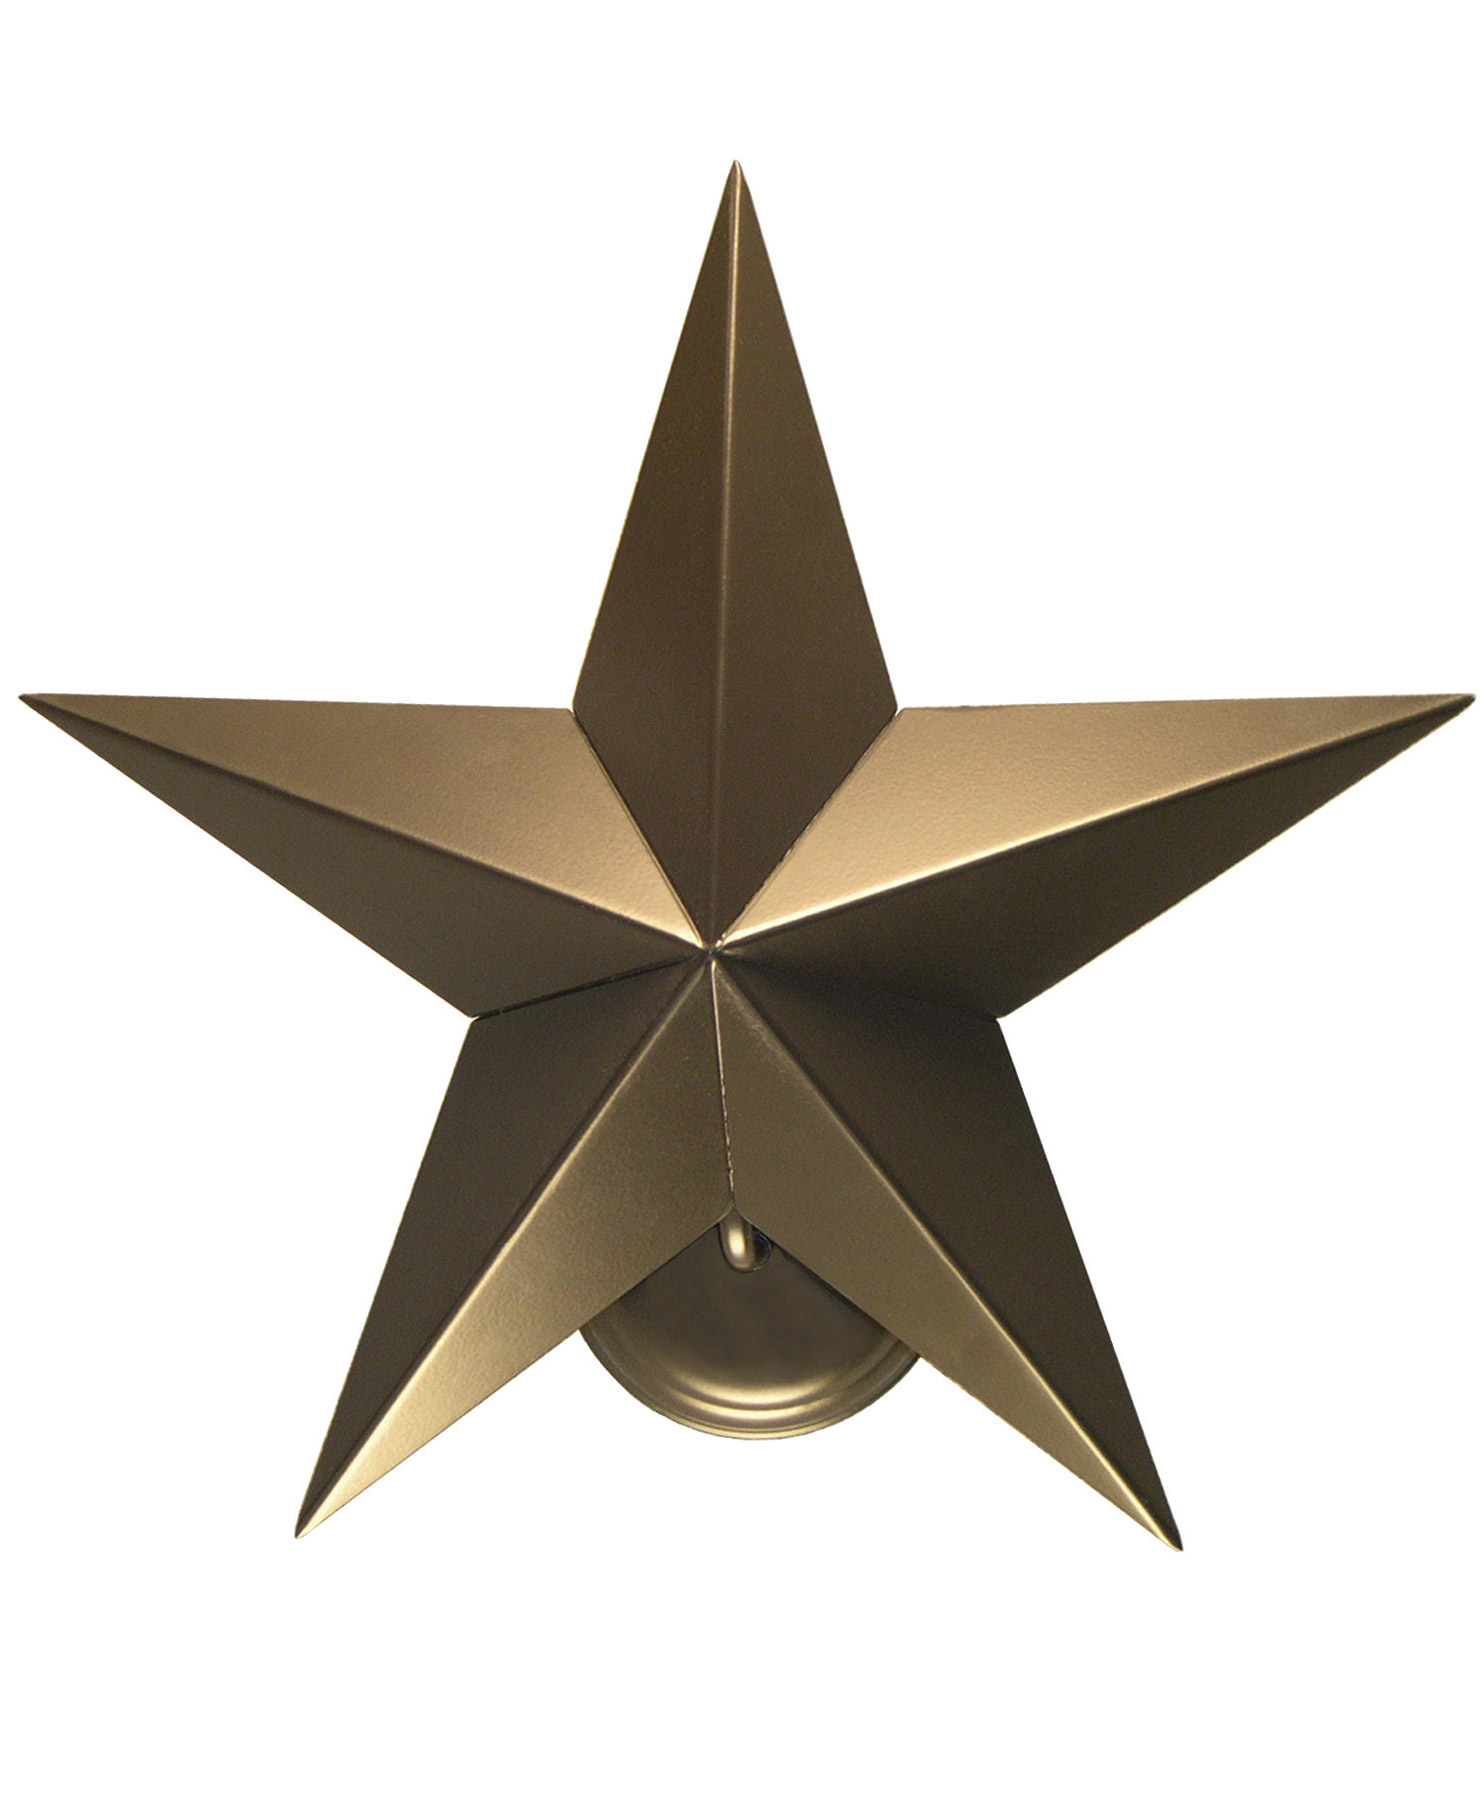 11861 texas star wall sconce meyda 11861 texas star wall sconce amipublicfo Image collections